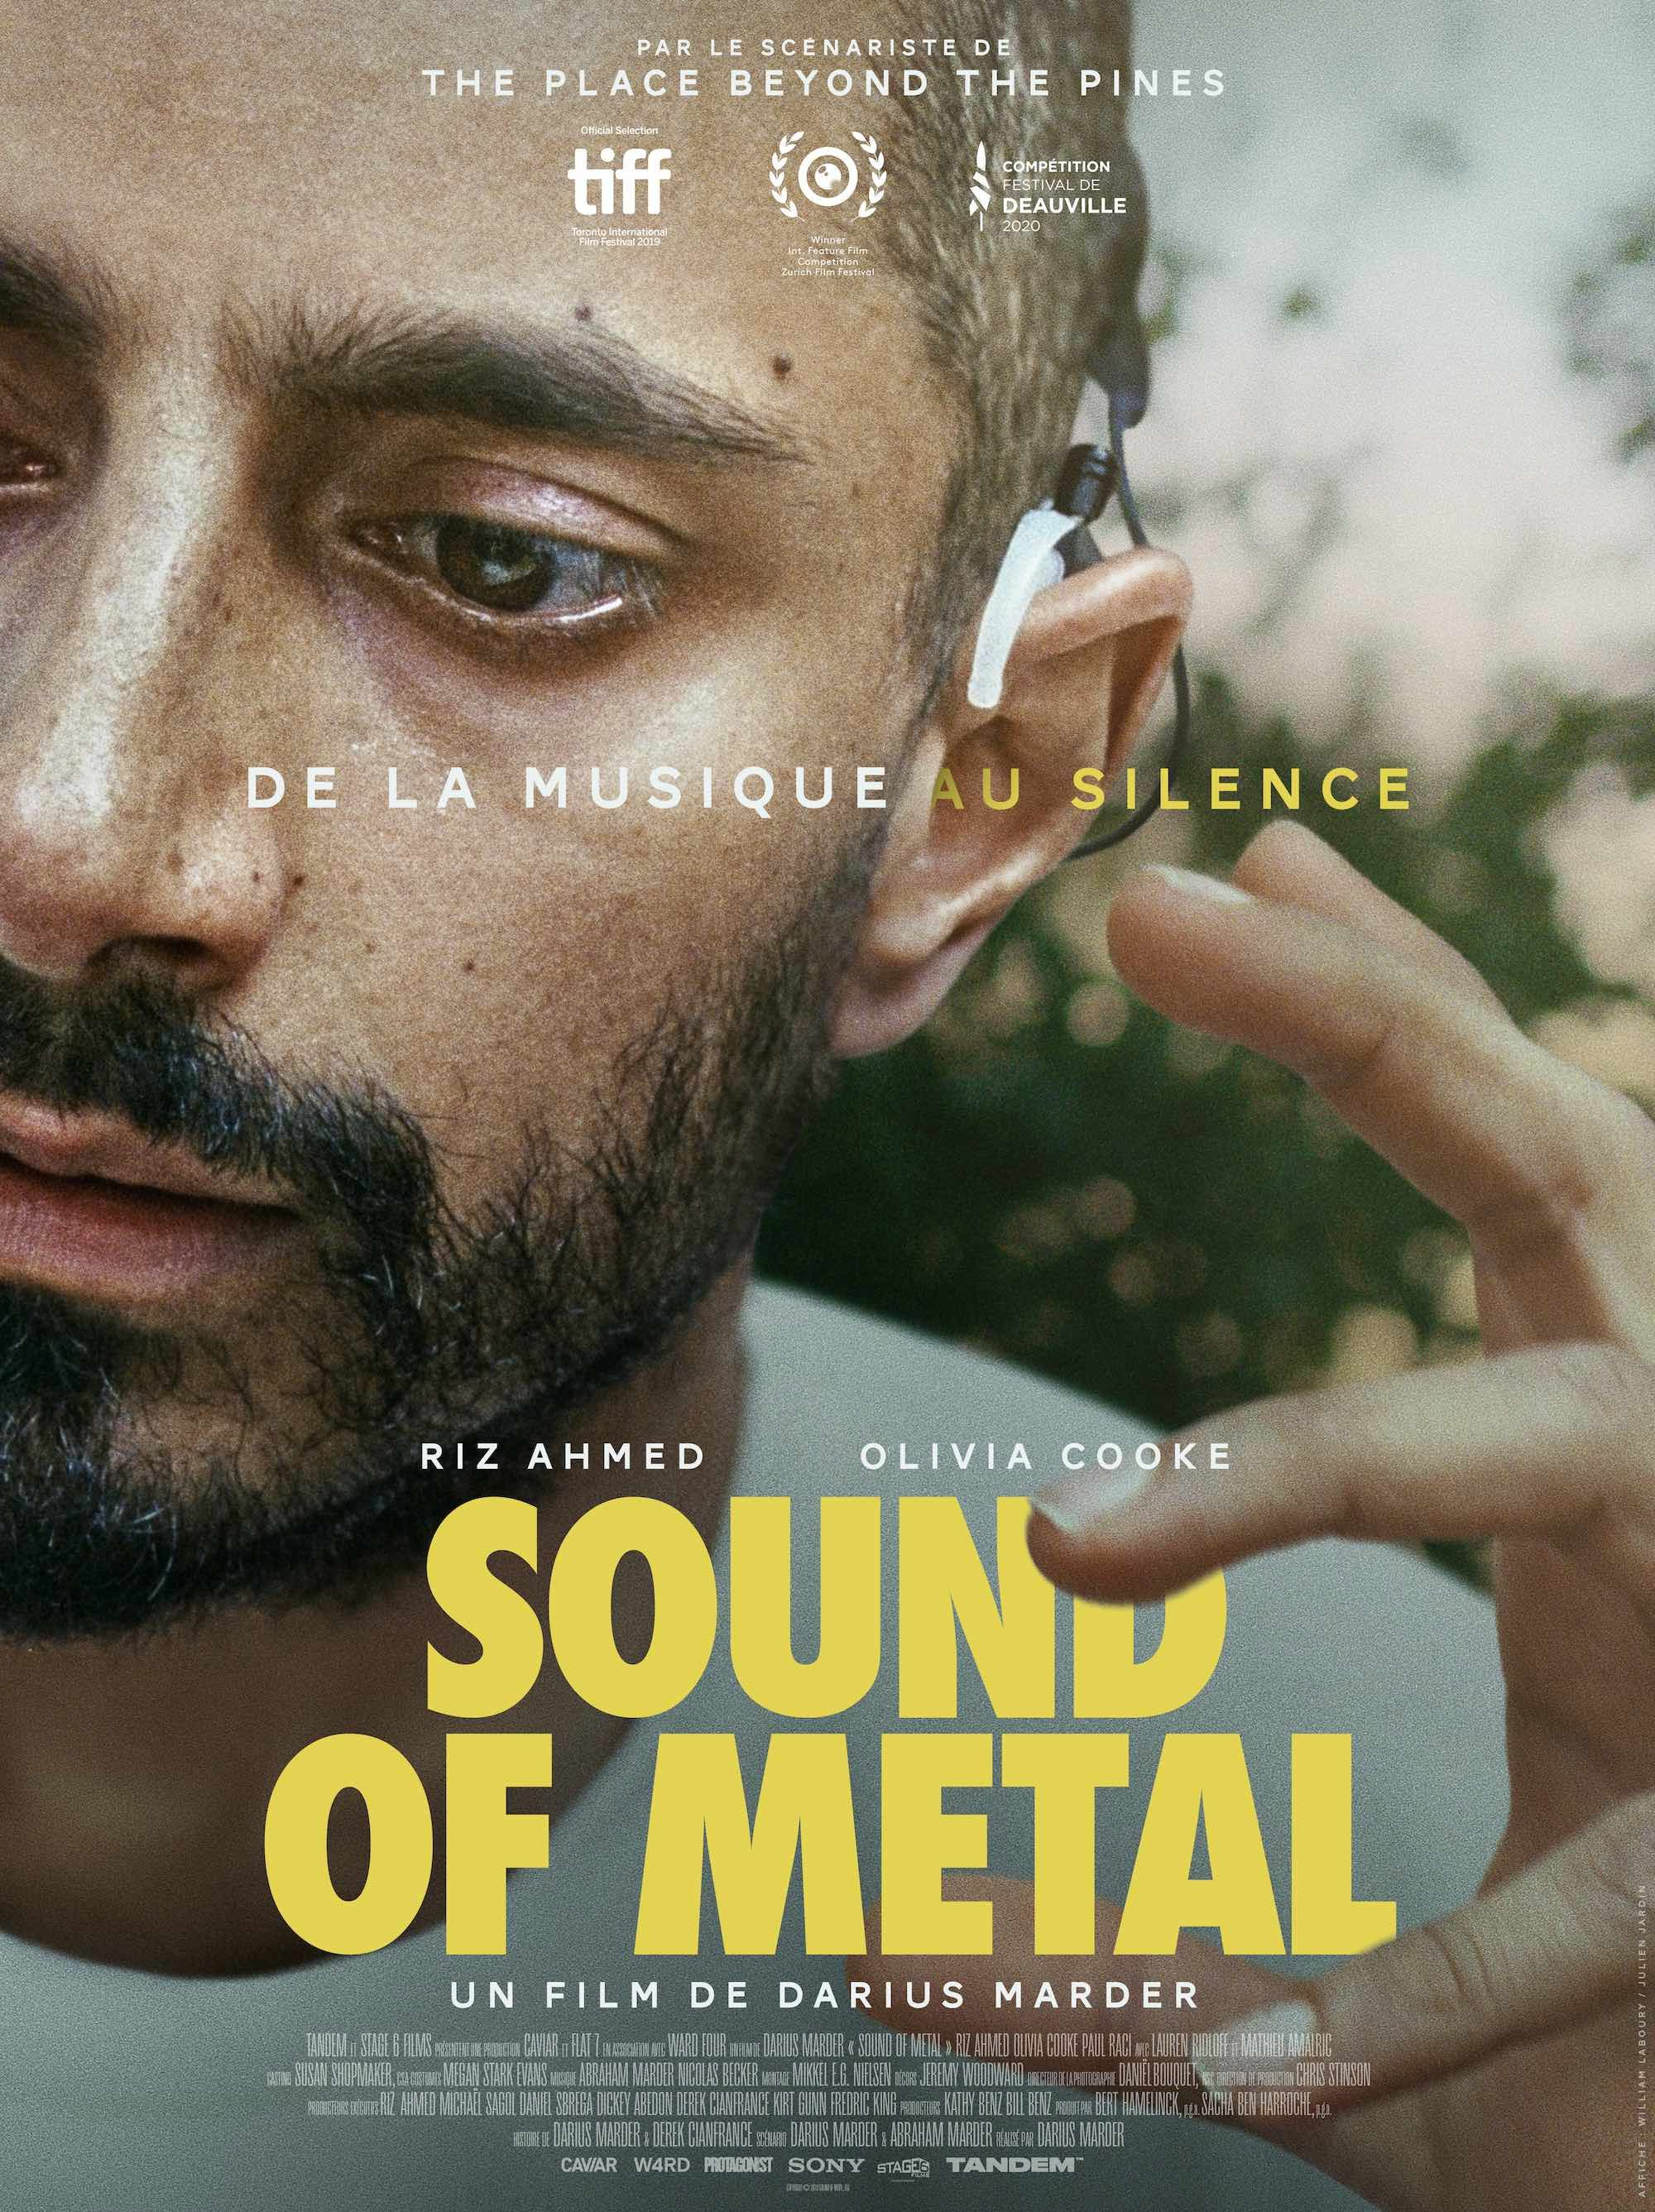 Sound of Metal - Film (2021) streaming VF gratuit complet